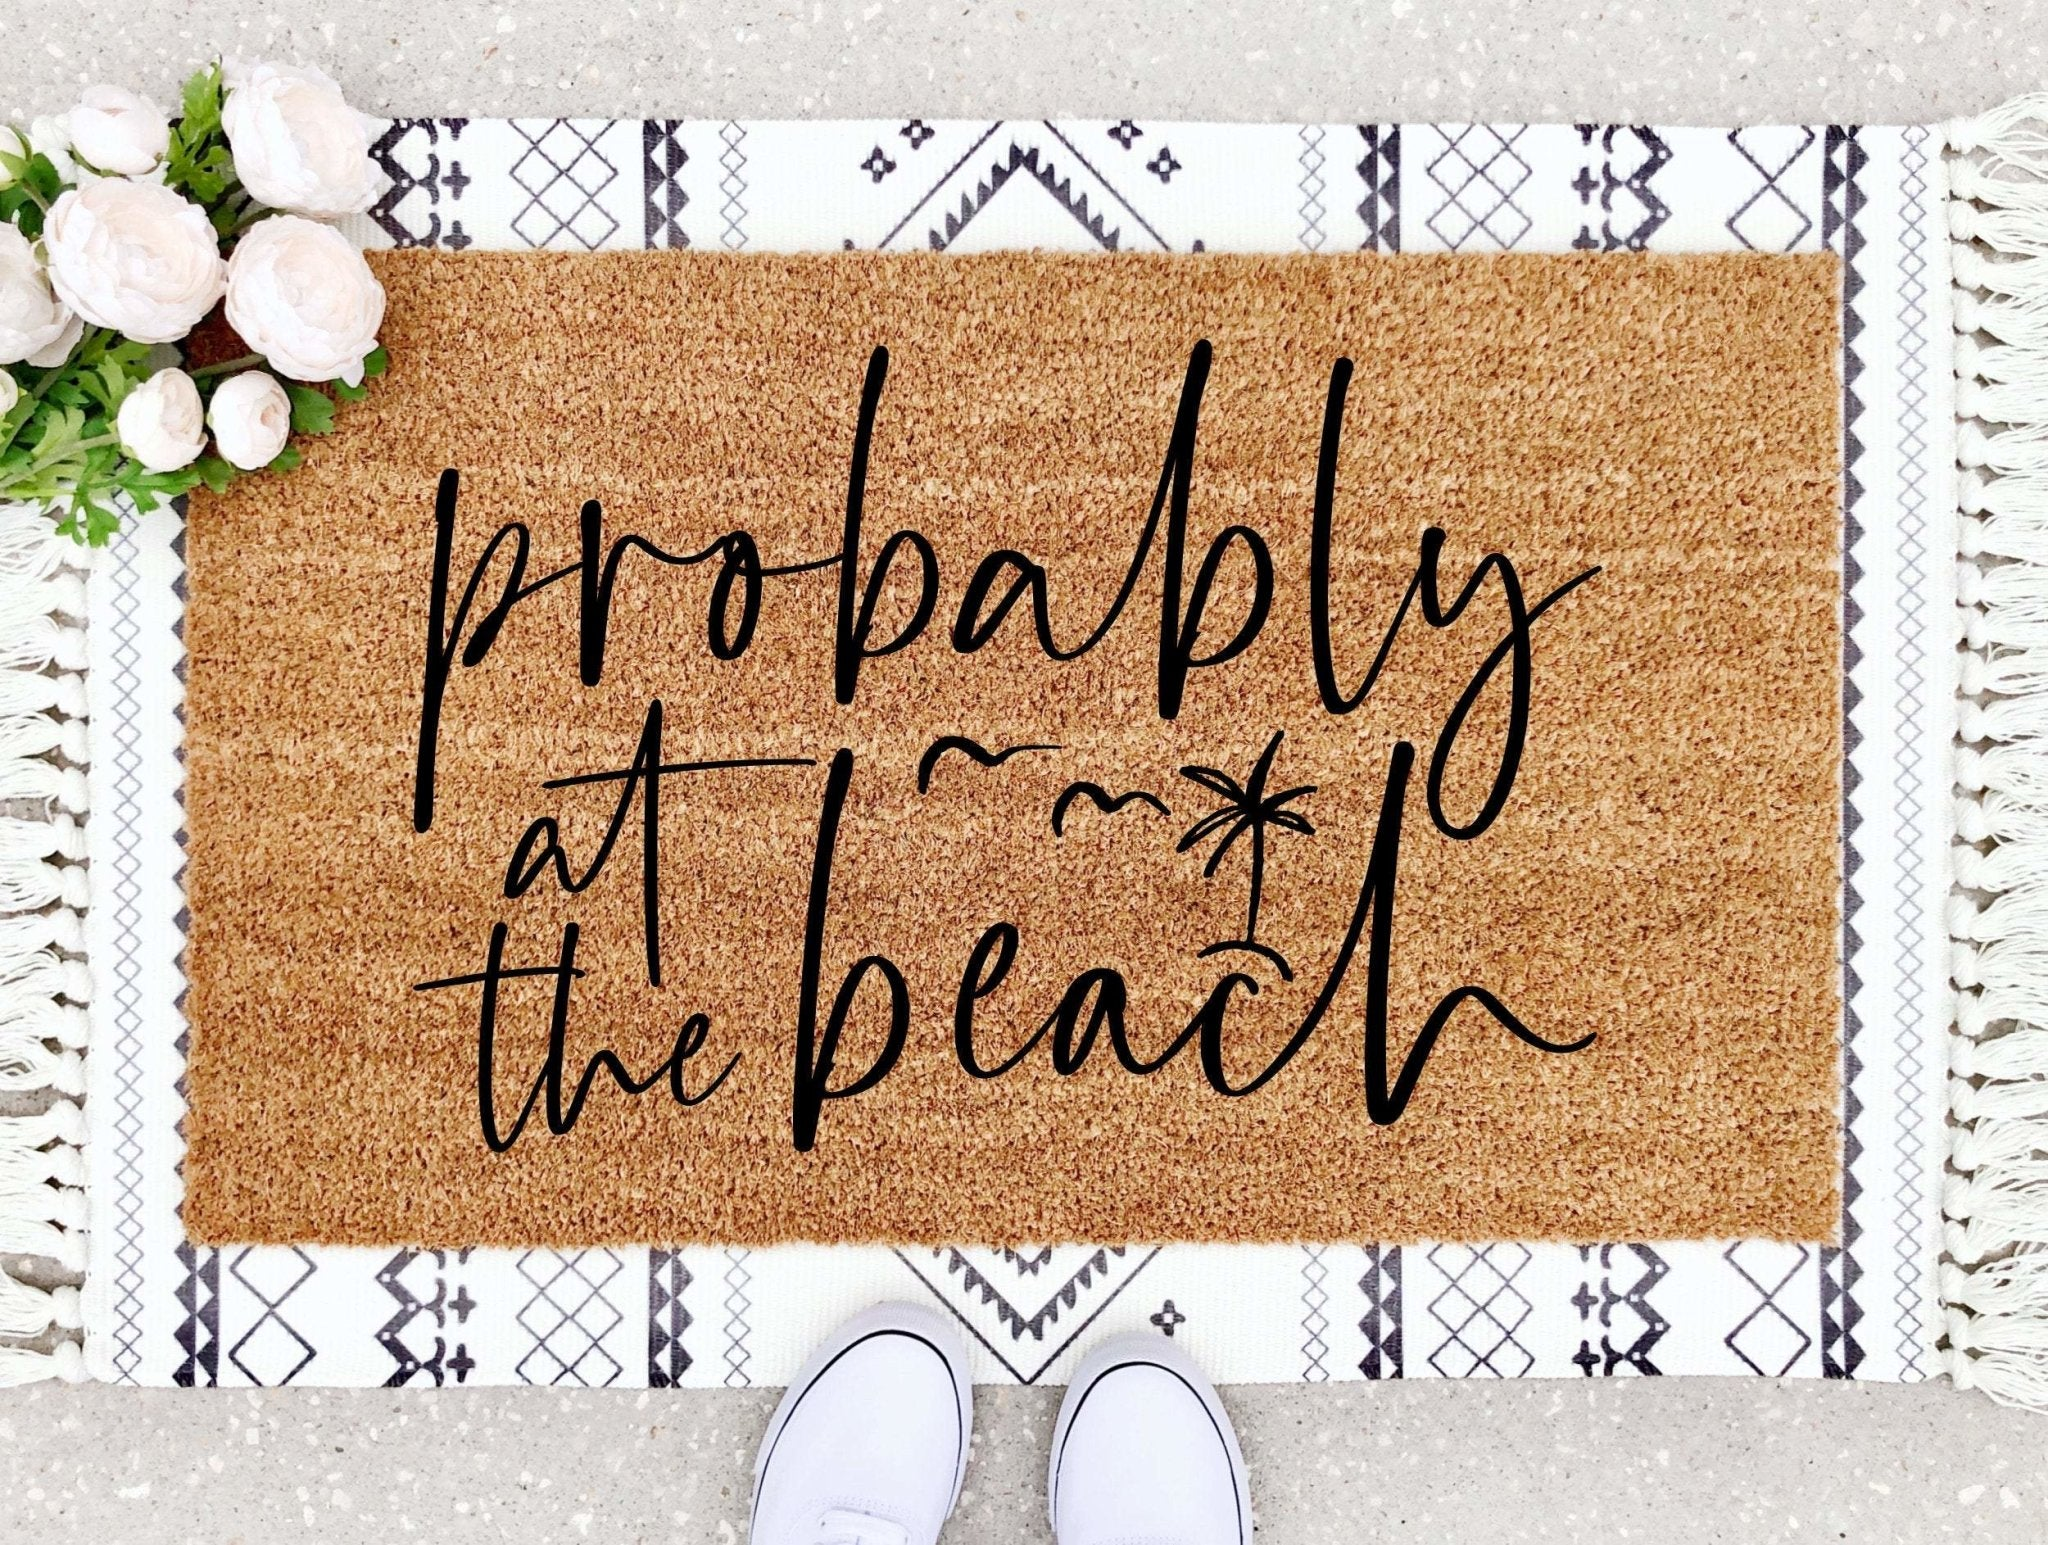 Probably At The Beach Doormat